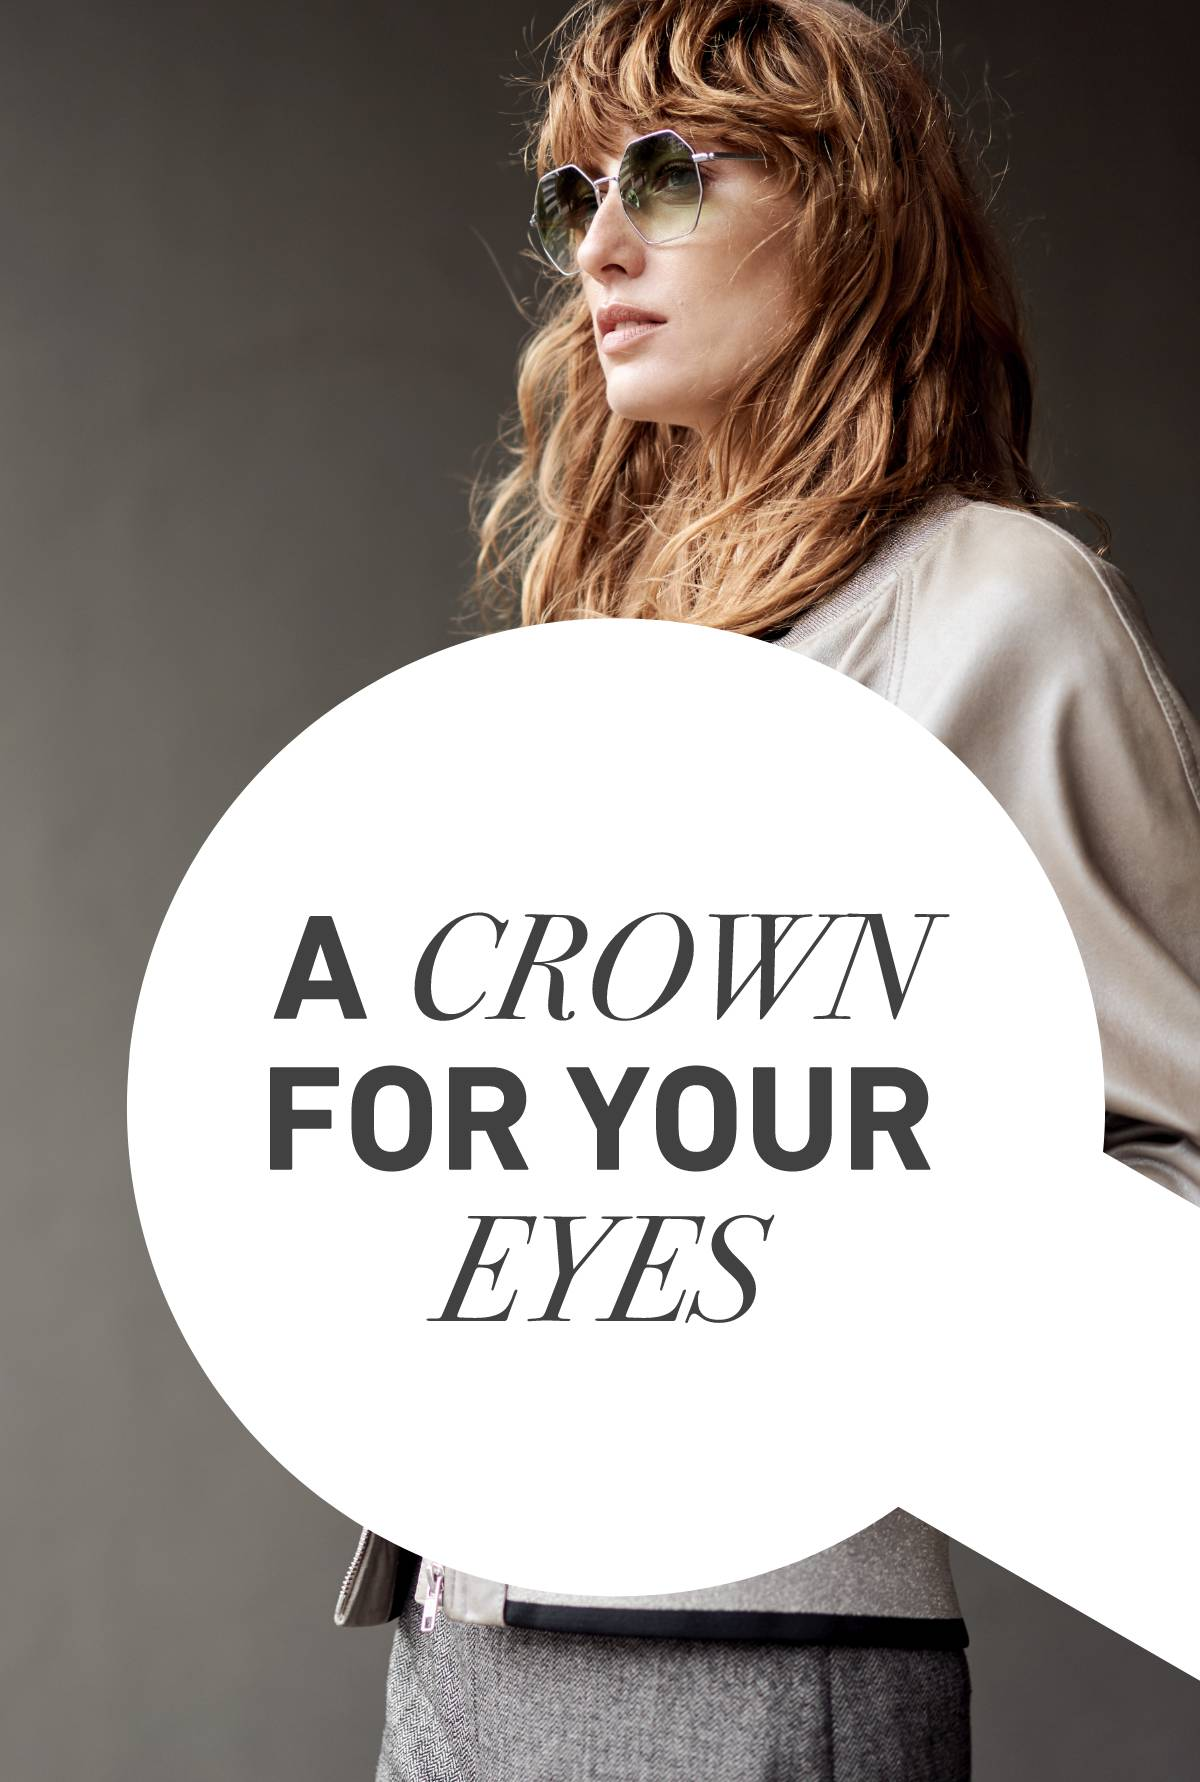 A crown for your eyes